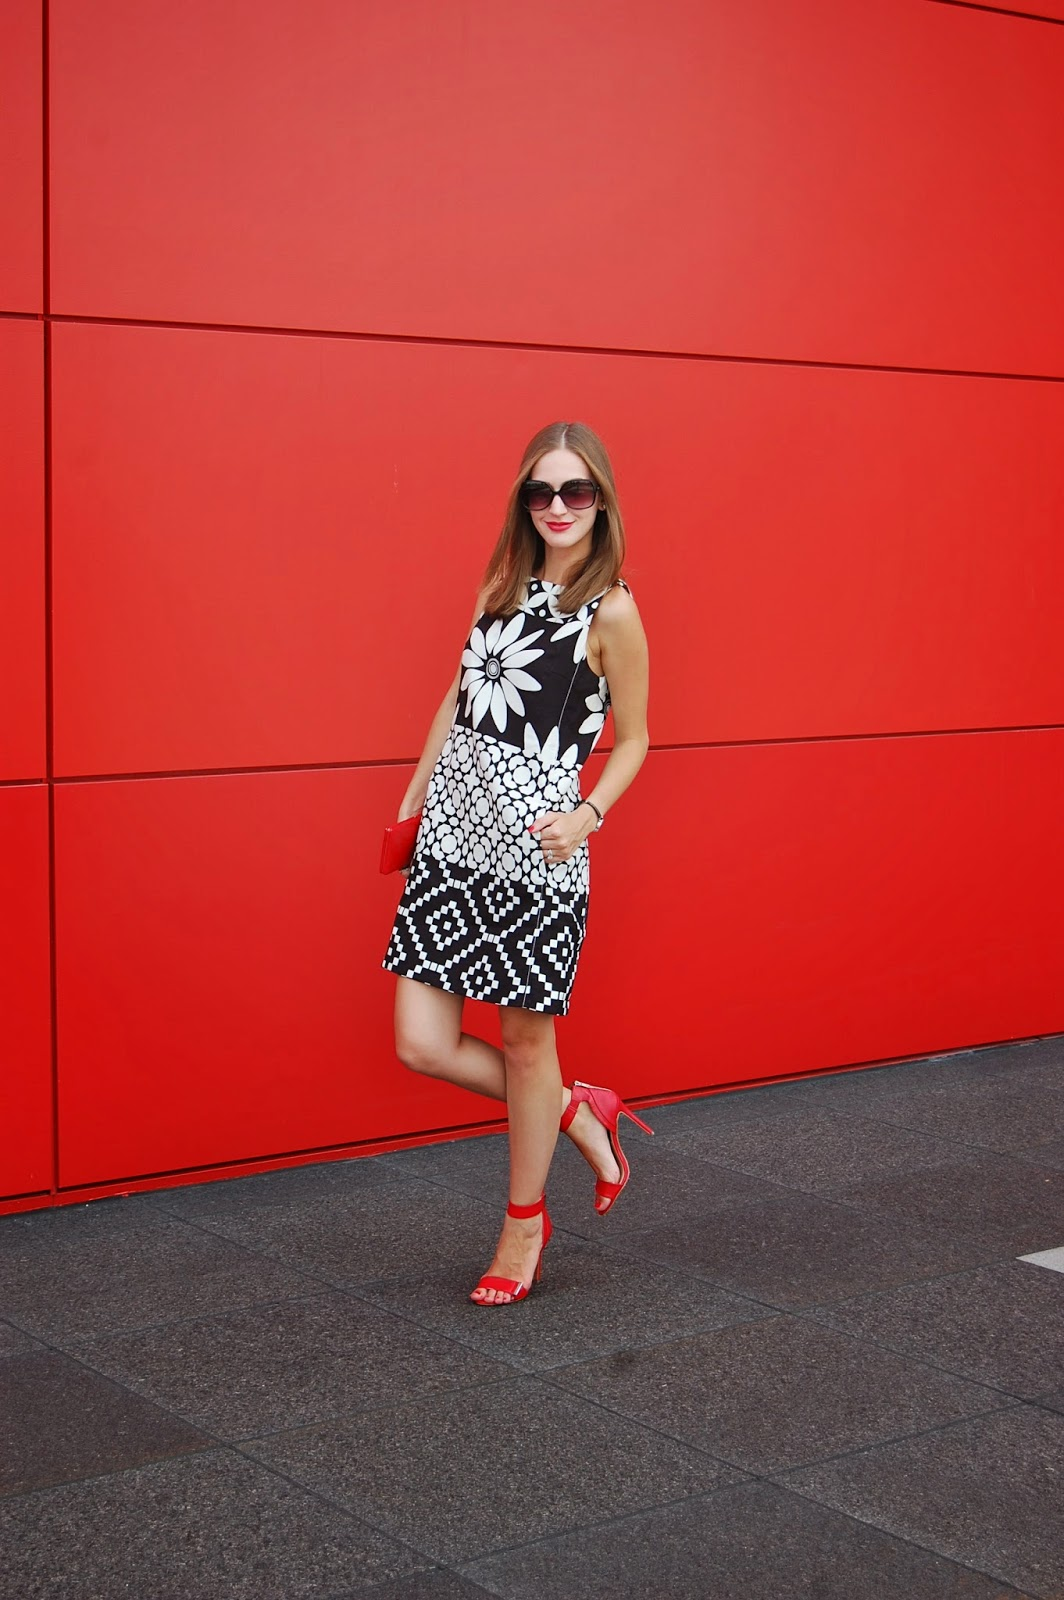 Wearing SS14 Desigual Perfectly Imperfect Dress, Mod Trend 2014, Wearing Steven By Steve Madden Lizete Red Heels